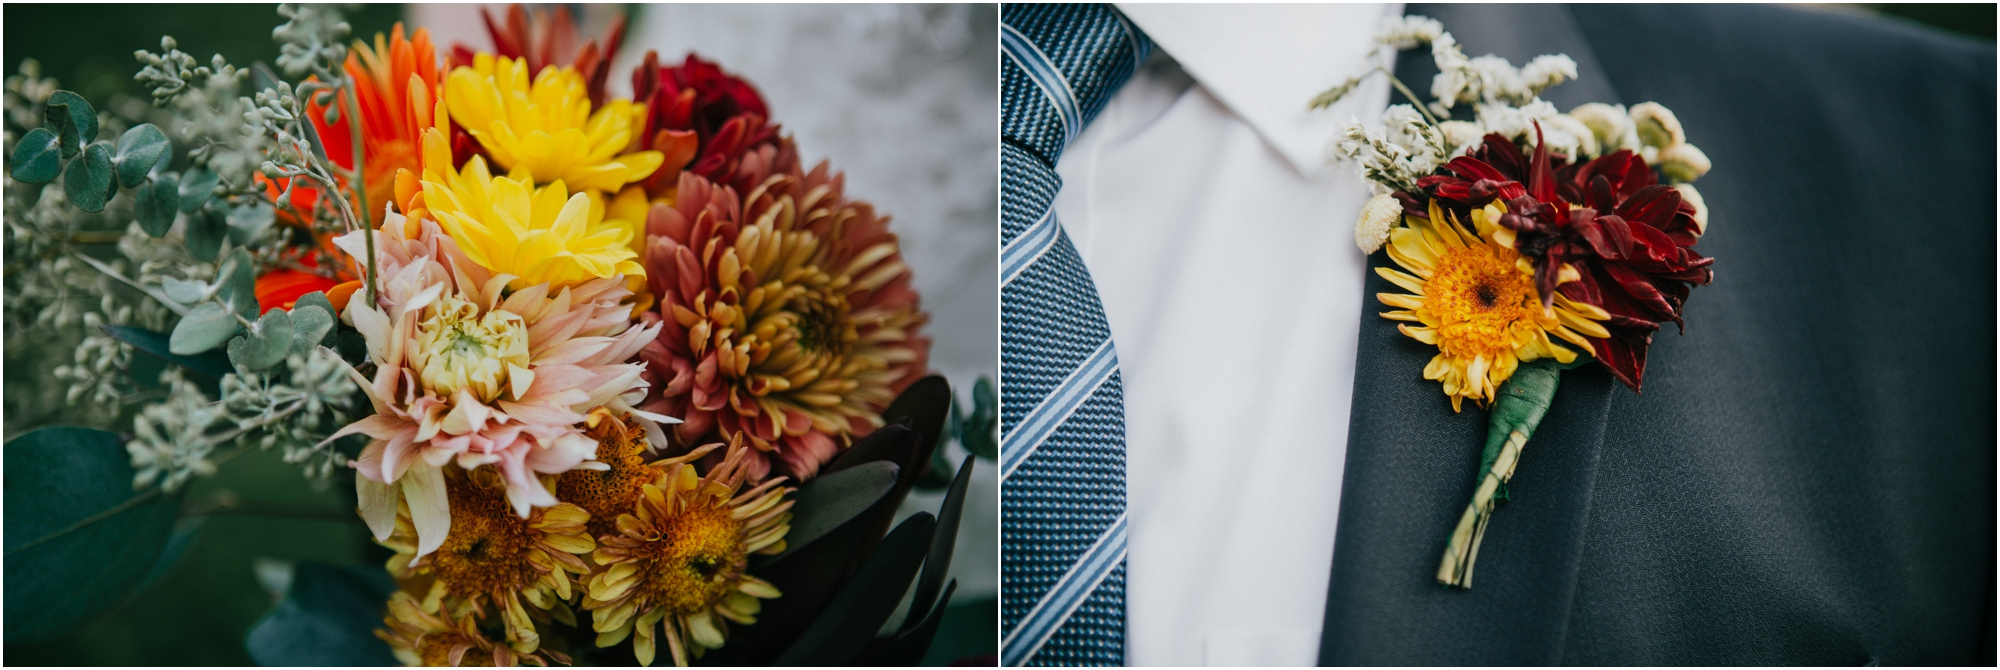 Fall-gem-stone-earthy-succulent-mount-airy-mansion-wedding-tennessee-elopement-photographer_0062.jpg